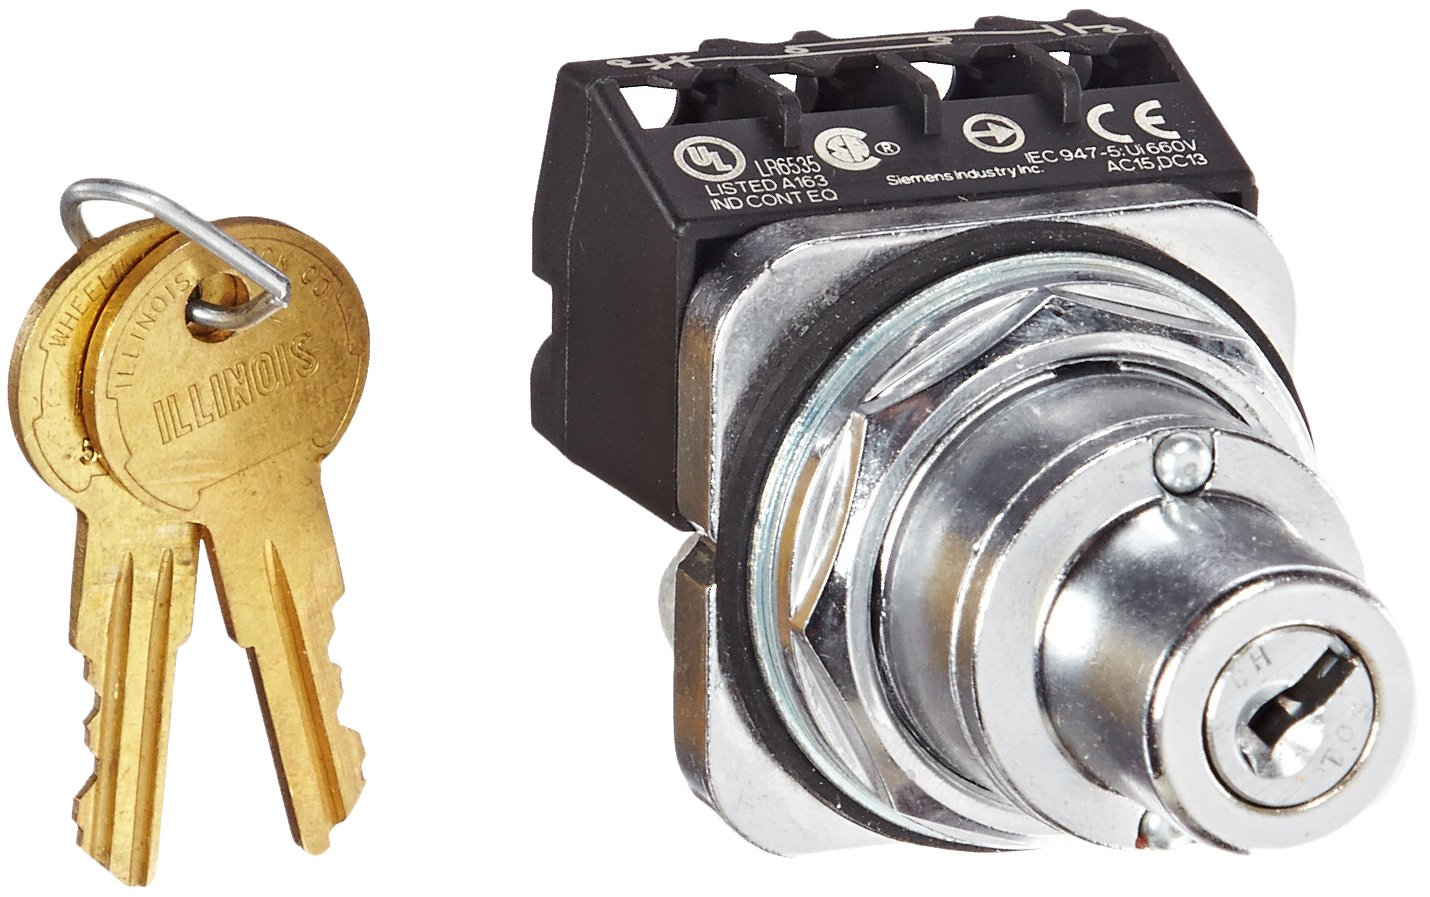 Siemens 52SC6AEA1 Heavy Duty Key Operated Selector Switch Unit, Water and Oil Tight, 2 Positions, Maintained Operation, Key Removable In All Positions, A Cam, 1NO + 1NC Contact Blocks